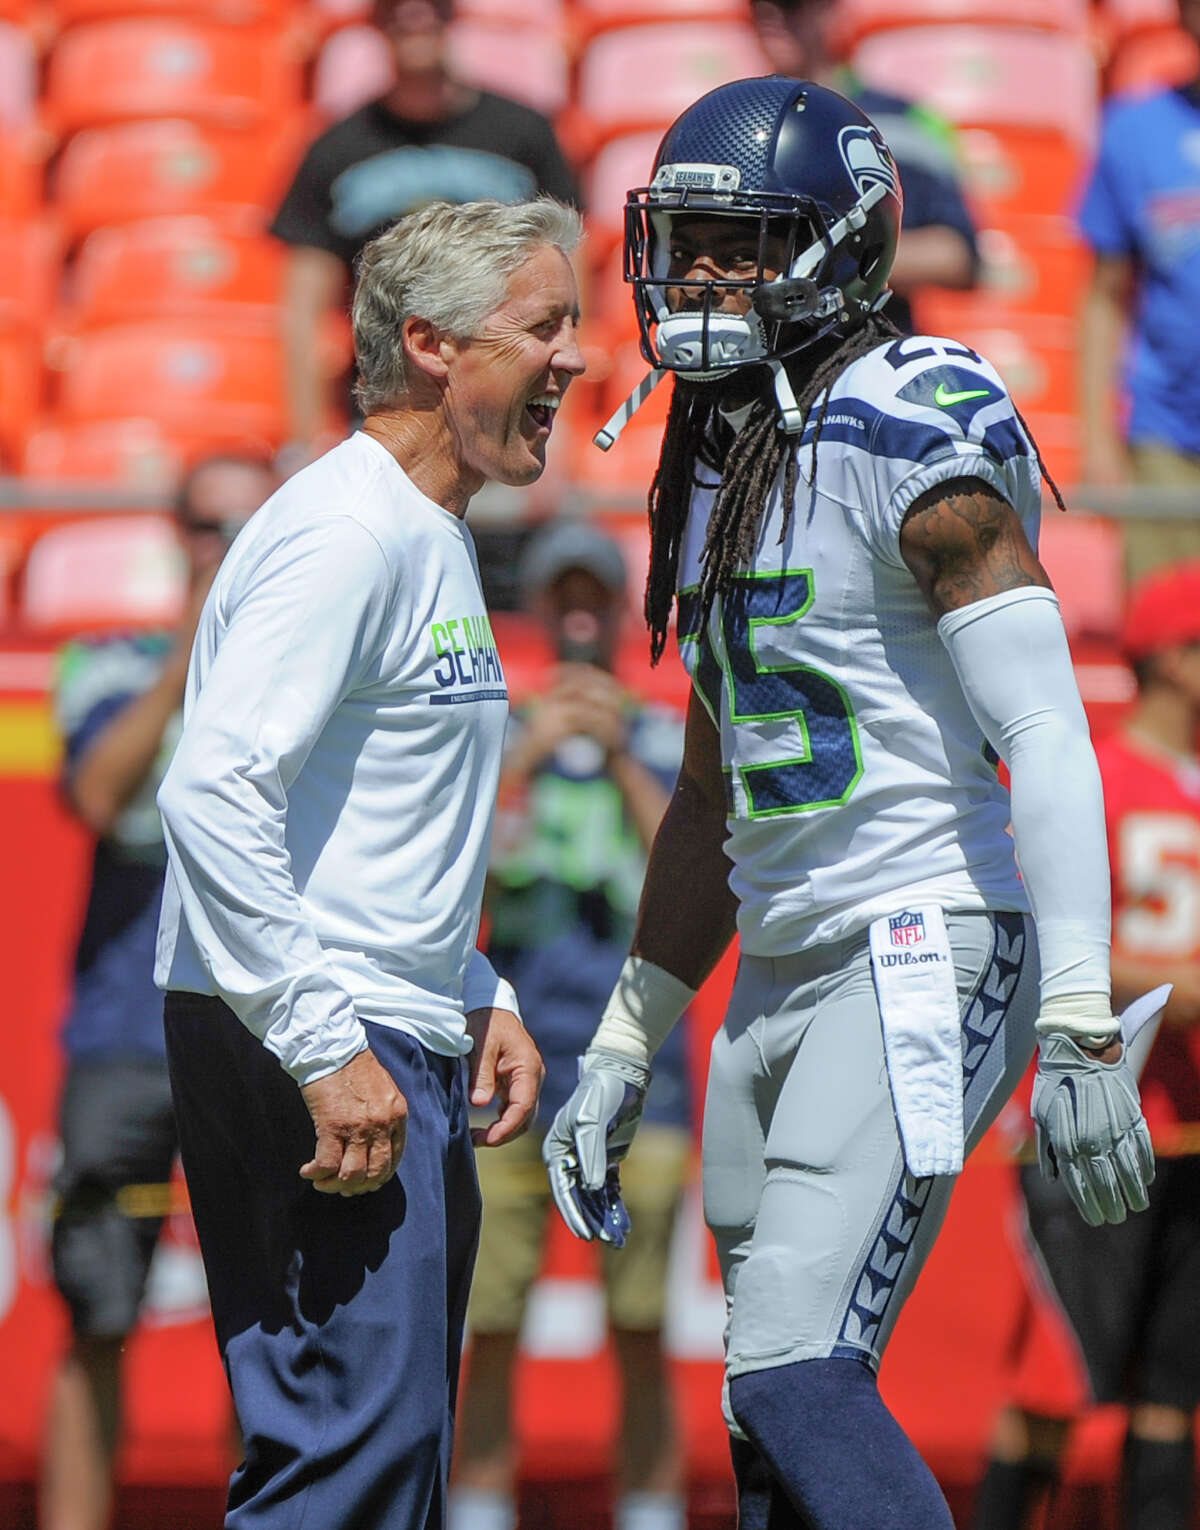 Seattle Seahawks head coach Pete Carroll talks as he walks behind cornerback Richard Sherman (25) before an NFL preseason football game against the Kansas City Chiefs in Kansas City, Mo., Saturday, Aug. 13, 2016. (AP Photo/Ed Zurga)